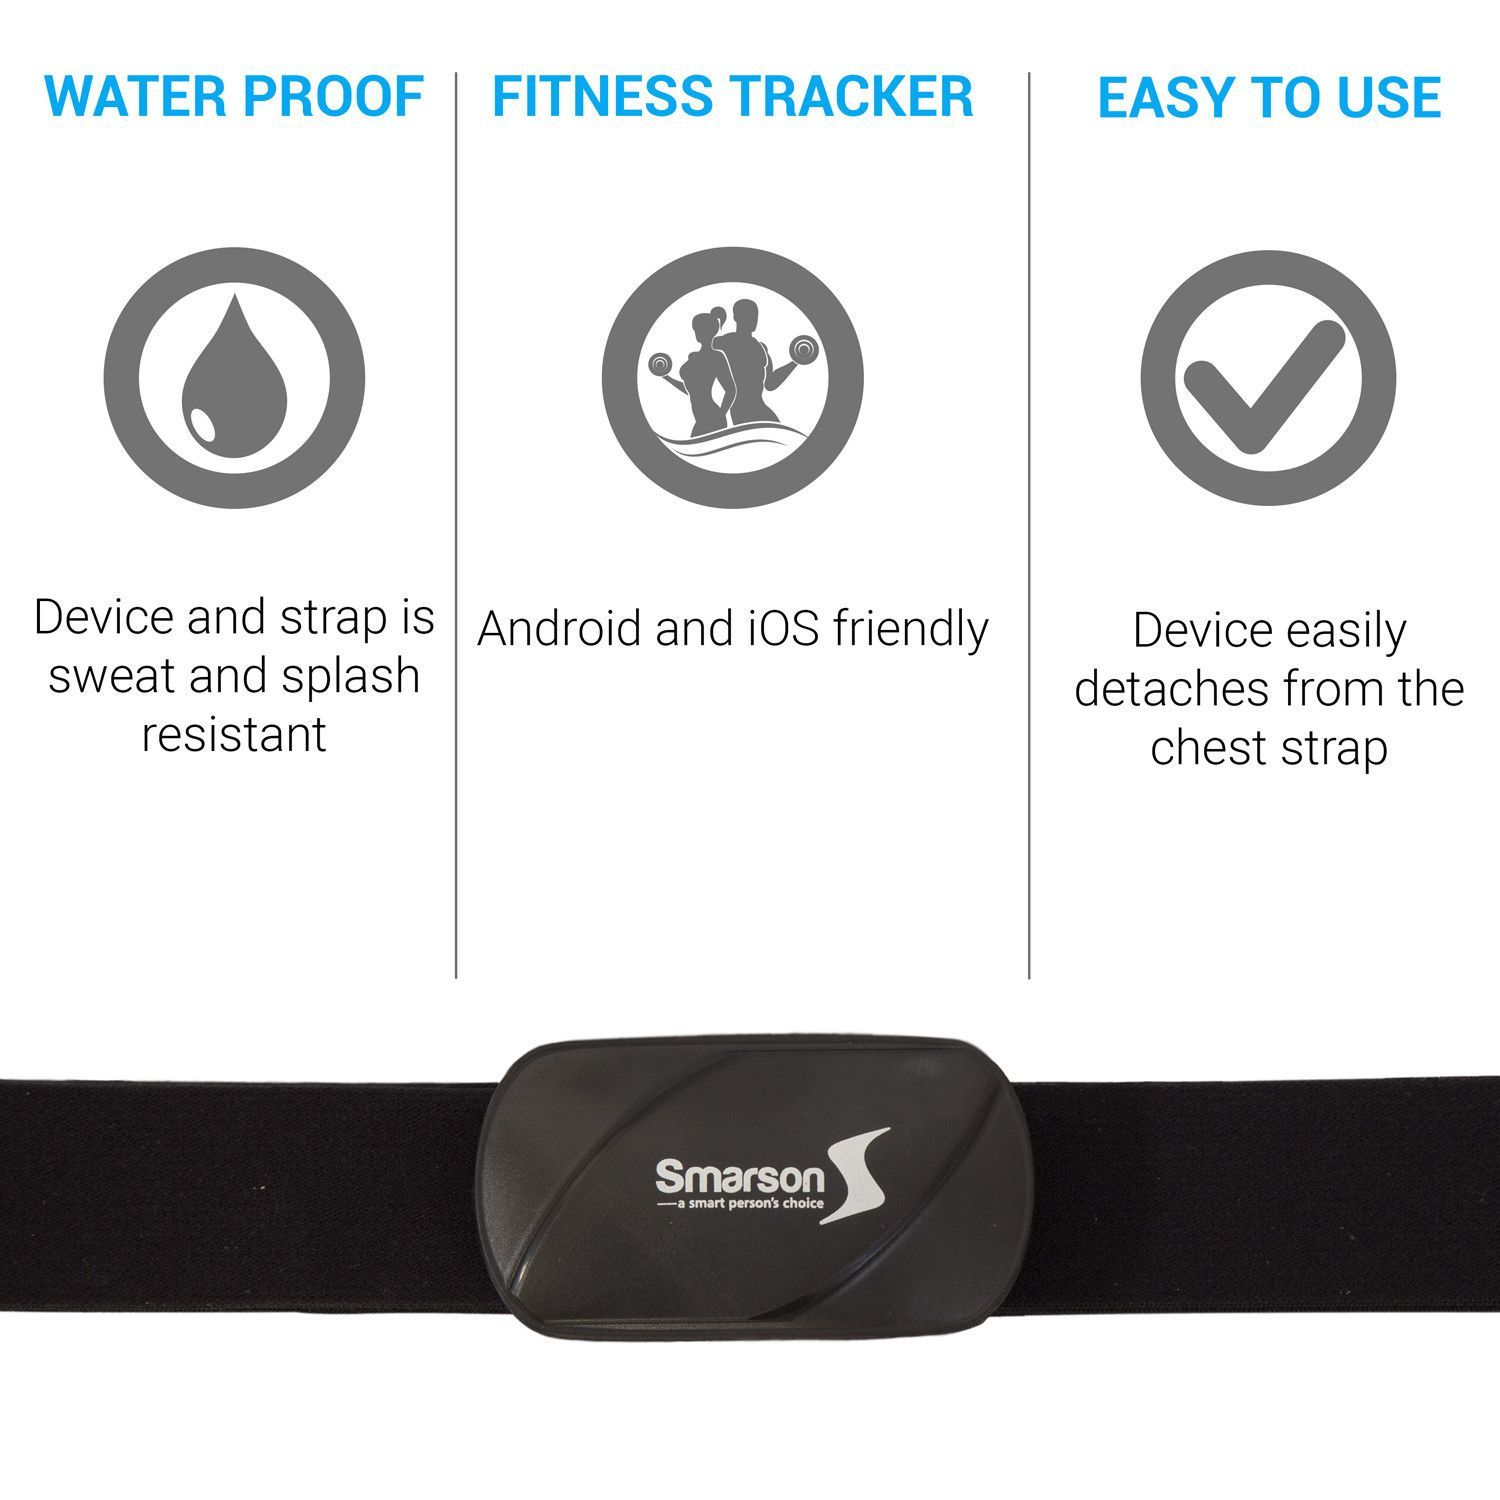 Accurately track your heart rate during any workout or